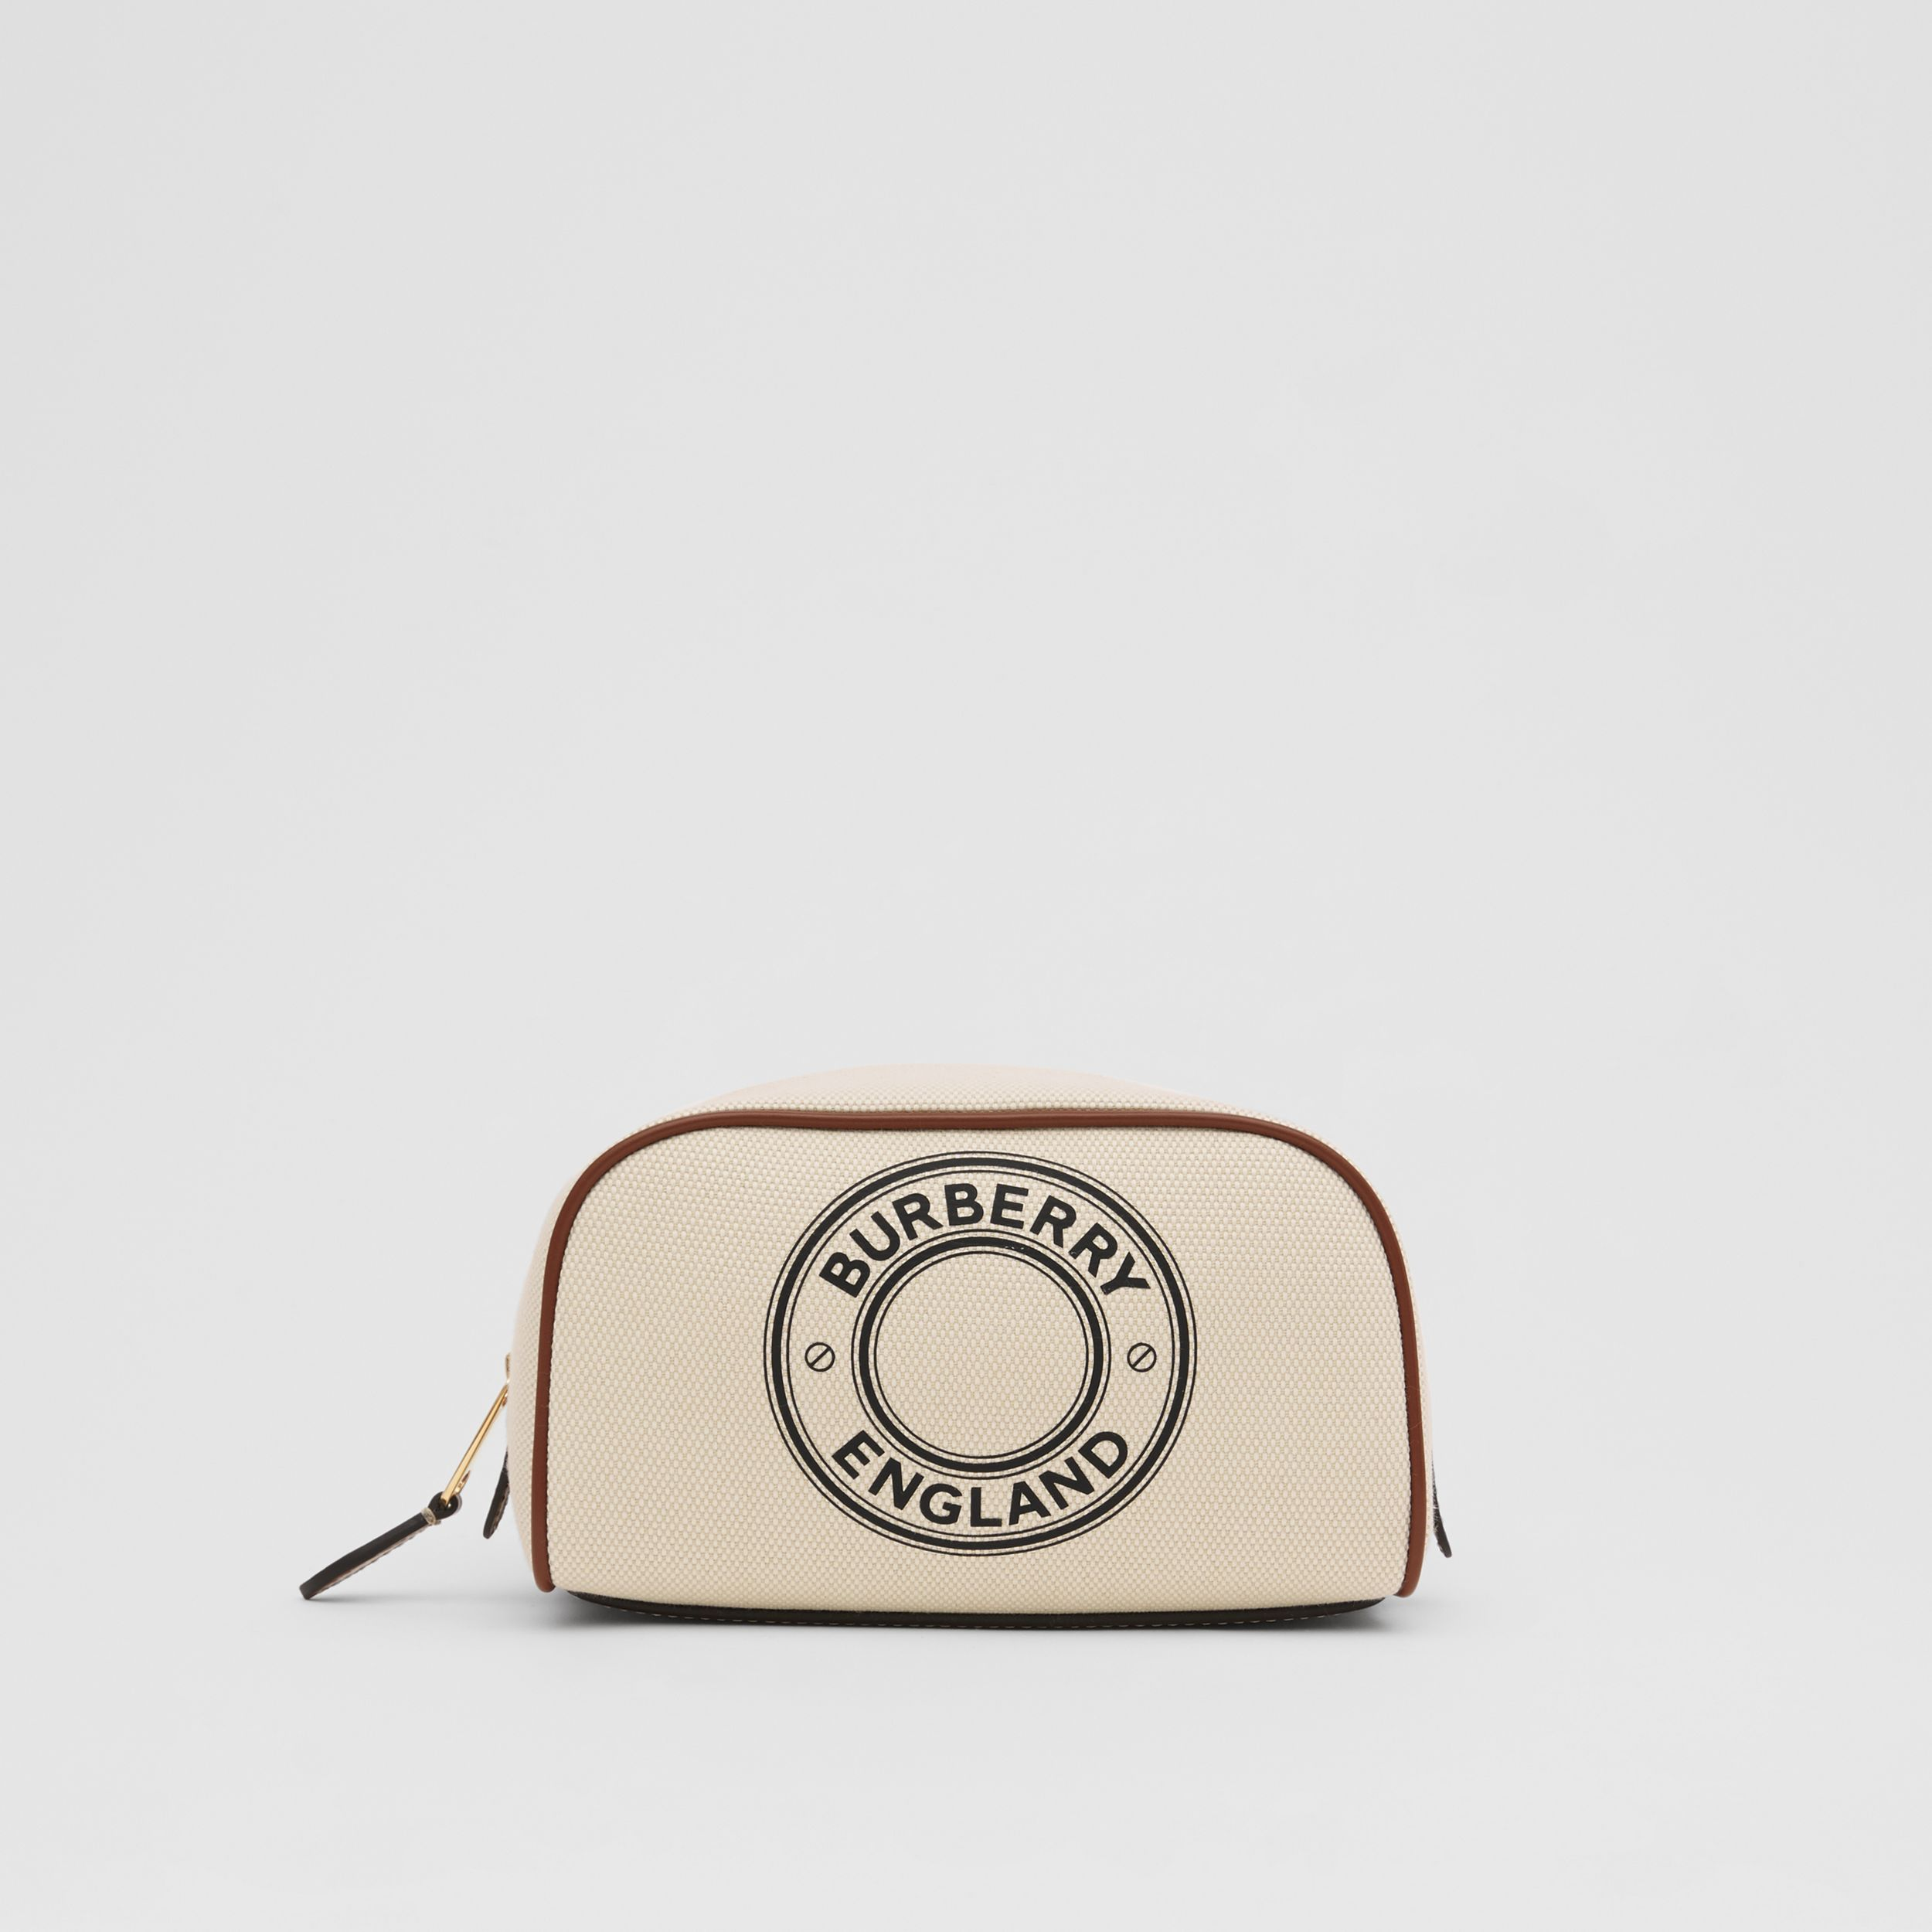 Small Logo Graphic Cotton Canvas Travel Pouch in White/tan - Women | Burberry - 1